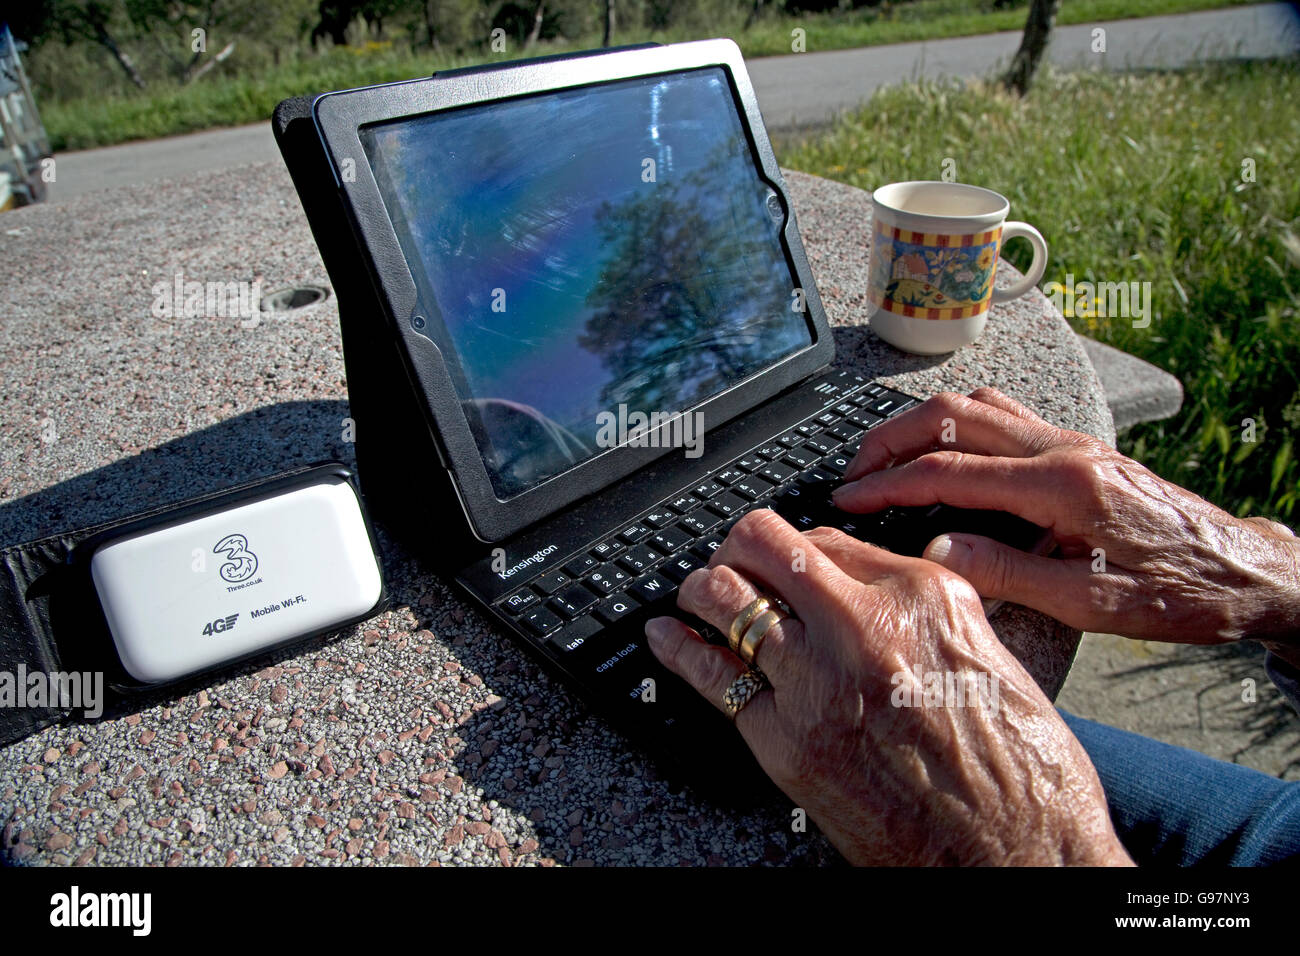 Woman using iPad with 4G mobile wifi system at rest area in country France - Stock Image